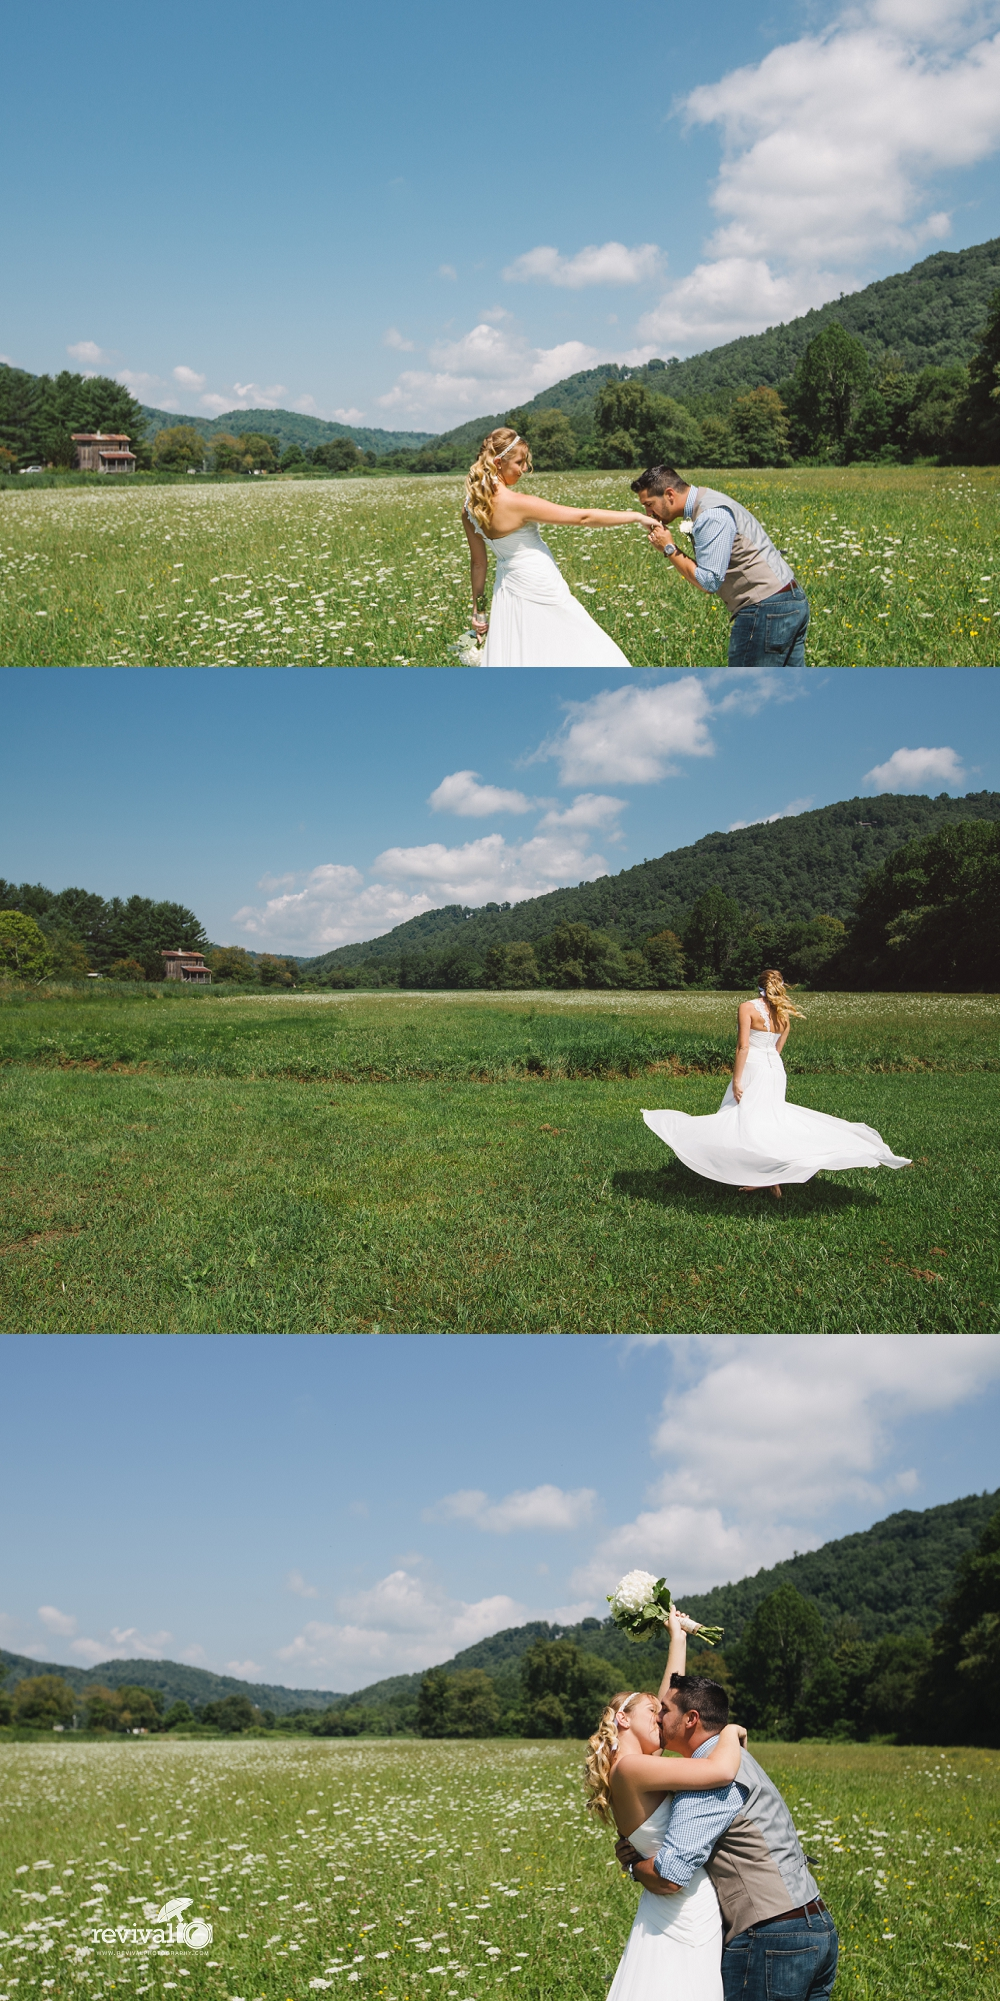 A Mountain Destination Elopement at The Mast Farm Inn Photos by Revival Photography www.revivalphotography.com